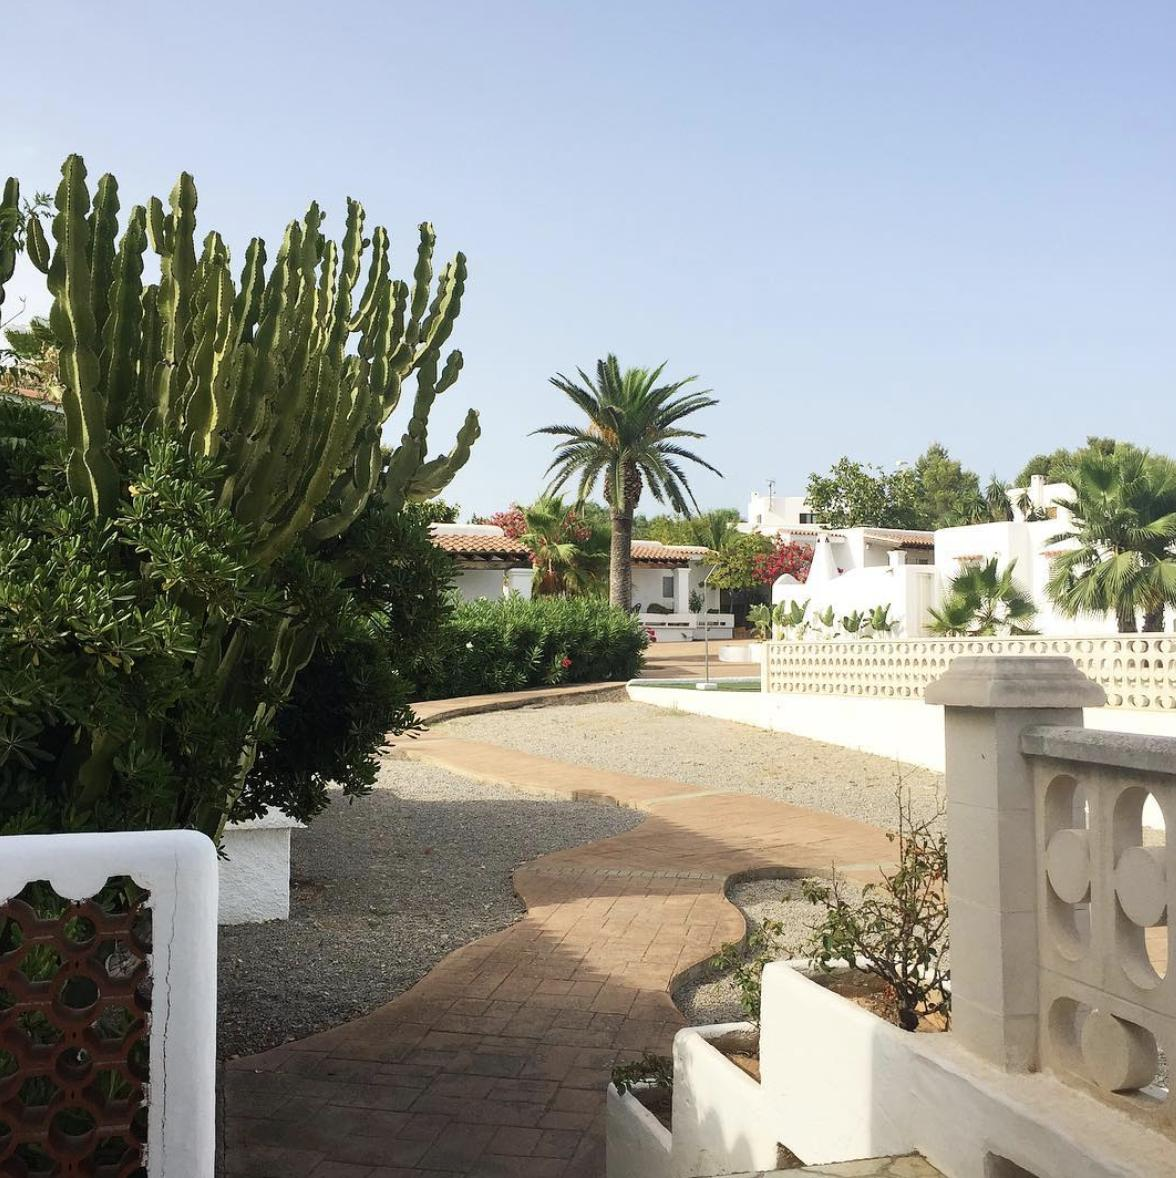 Beautiful spring days at Residencial Bogamarí 🌝http://ow.ly/QpmH50uj8qI  #hotel #holidayvillas #Ibiza